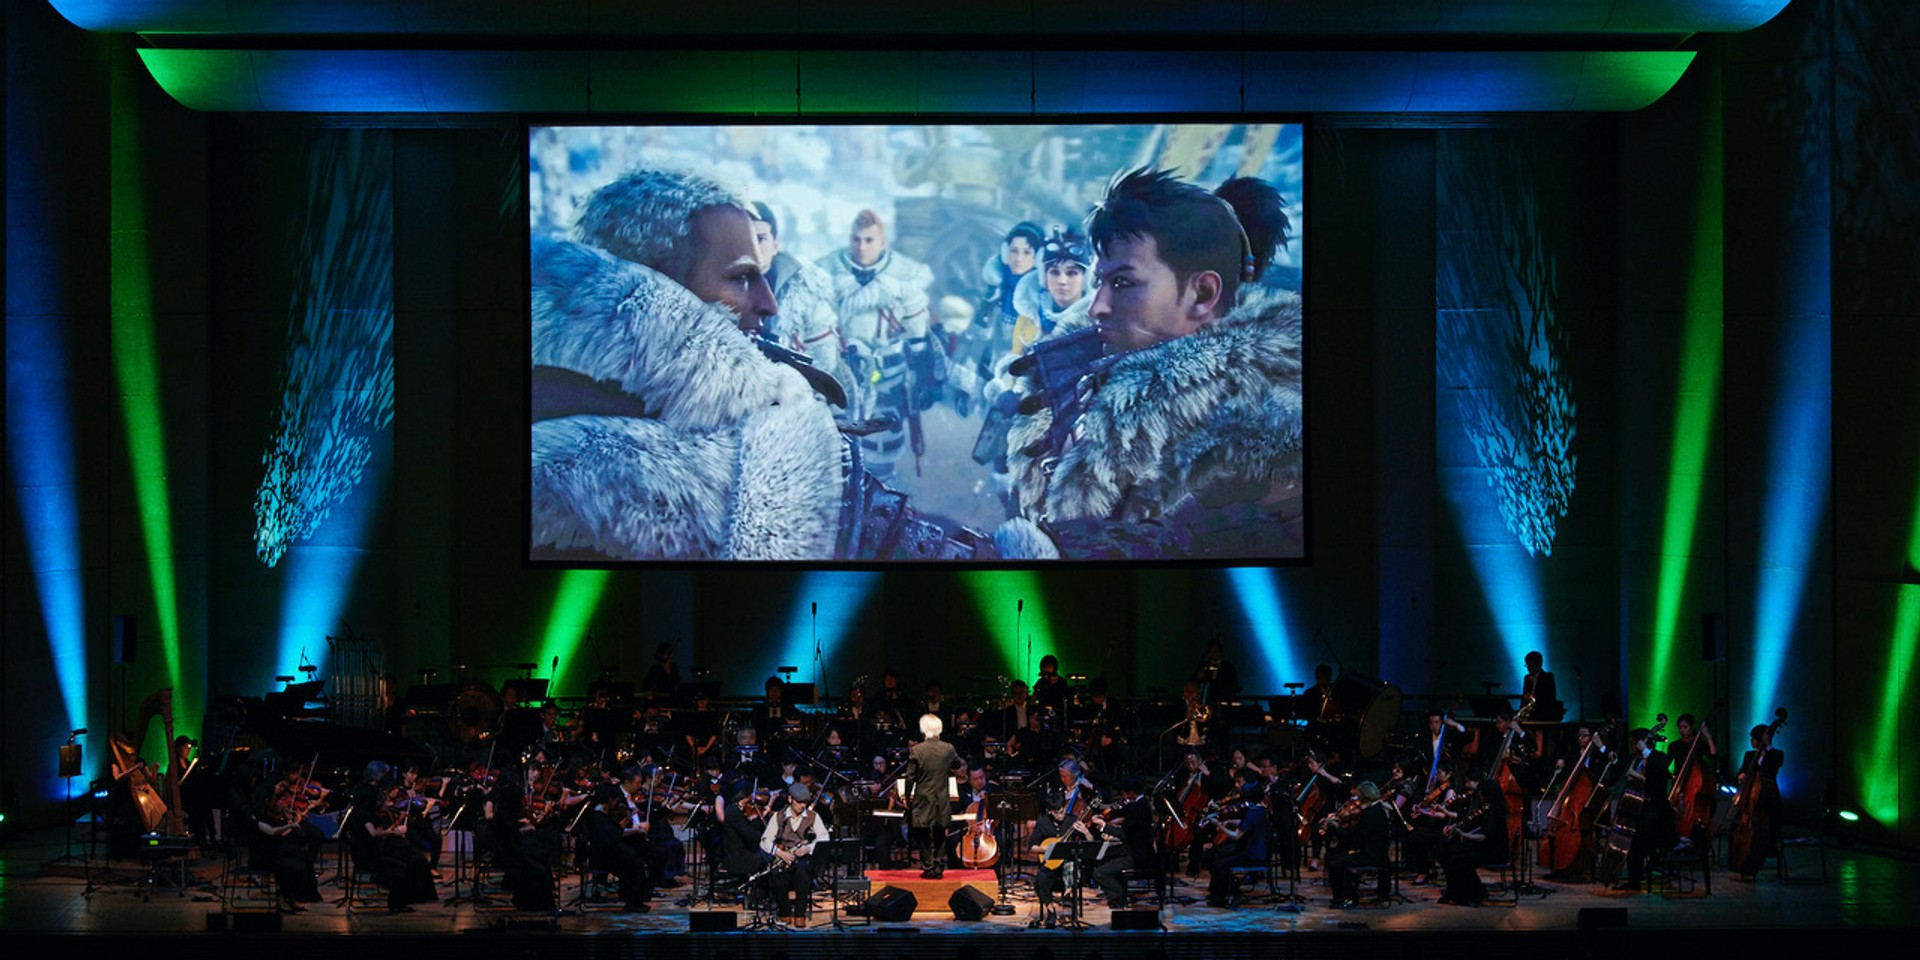 Stream the Monster Hunter Orchestra Concert 2020 this October